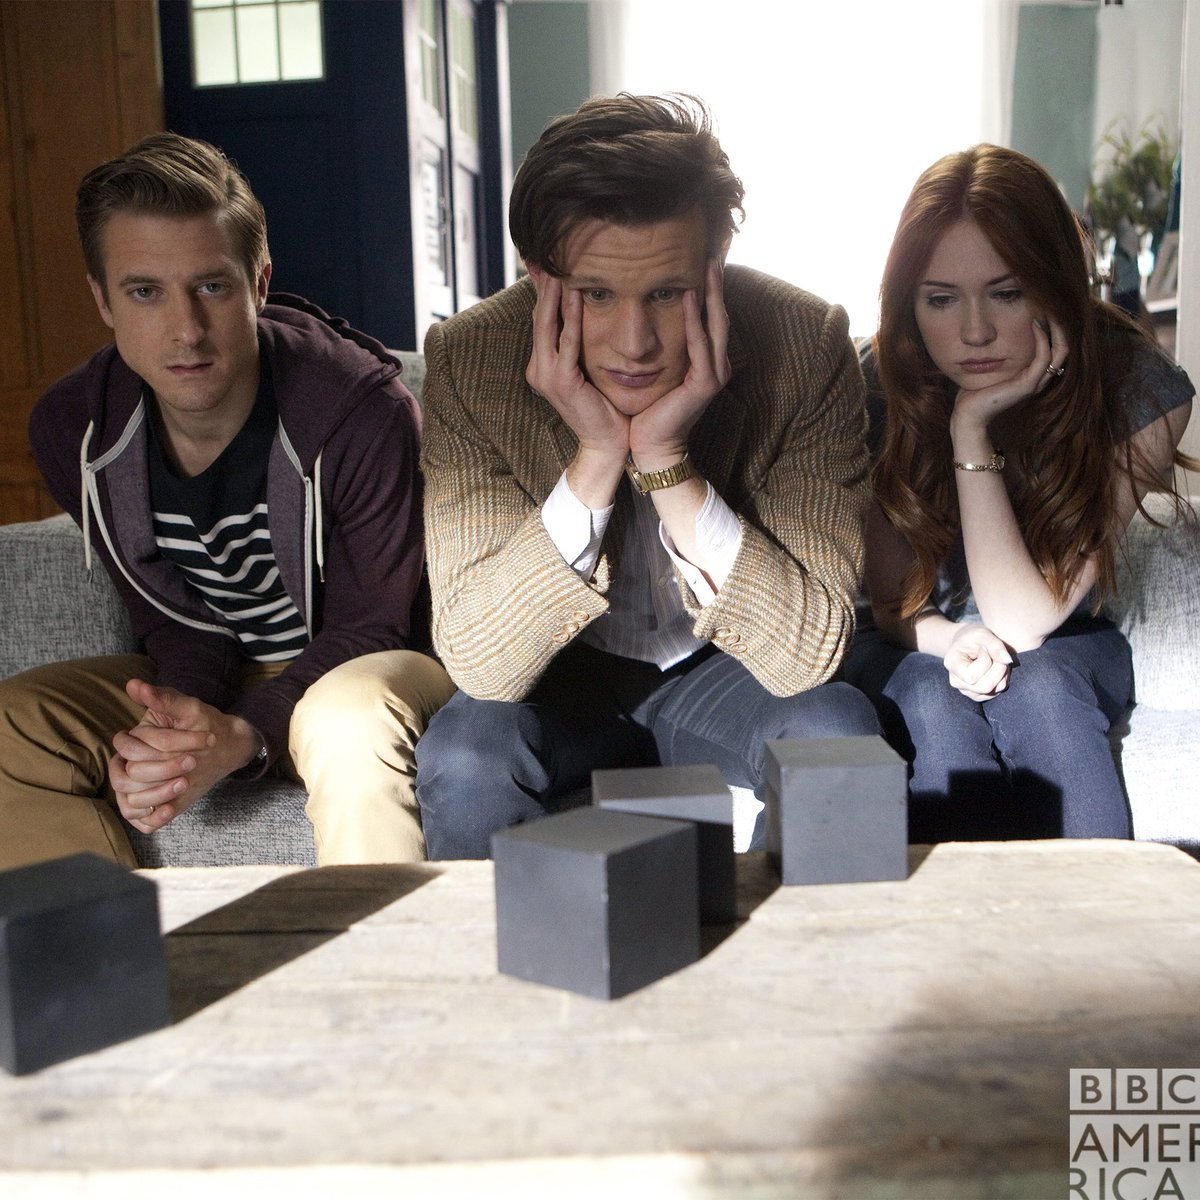 Use boredom to your advantage and invent something cool like Yorkshire puddings! Pudding, yet savory. #DoctorWho #MondayMotivaton <br>http://pic.twitter.com/nsZR7fZtVf